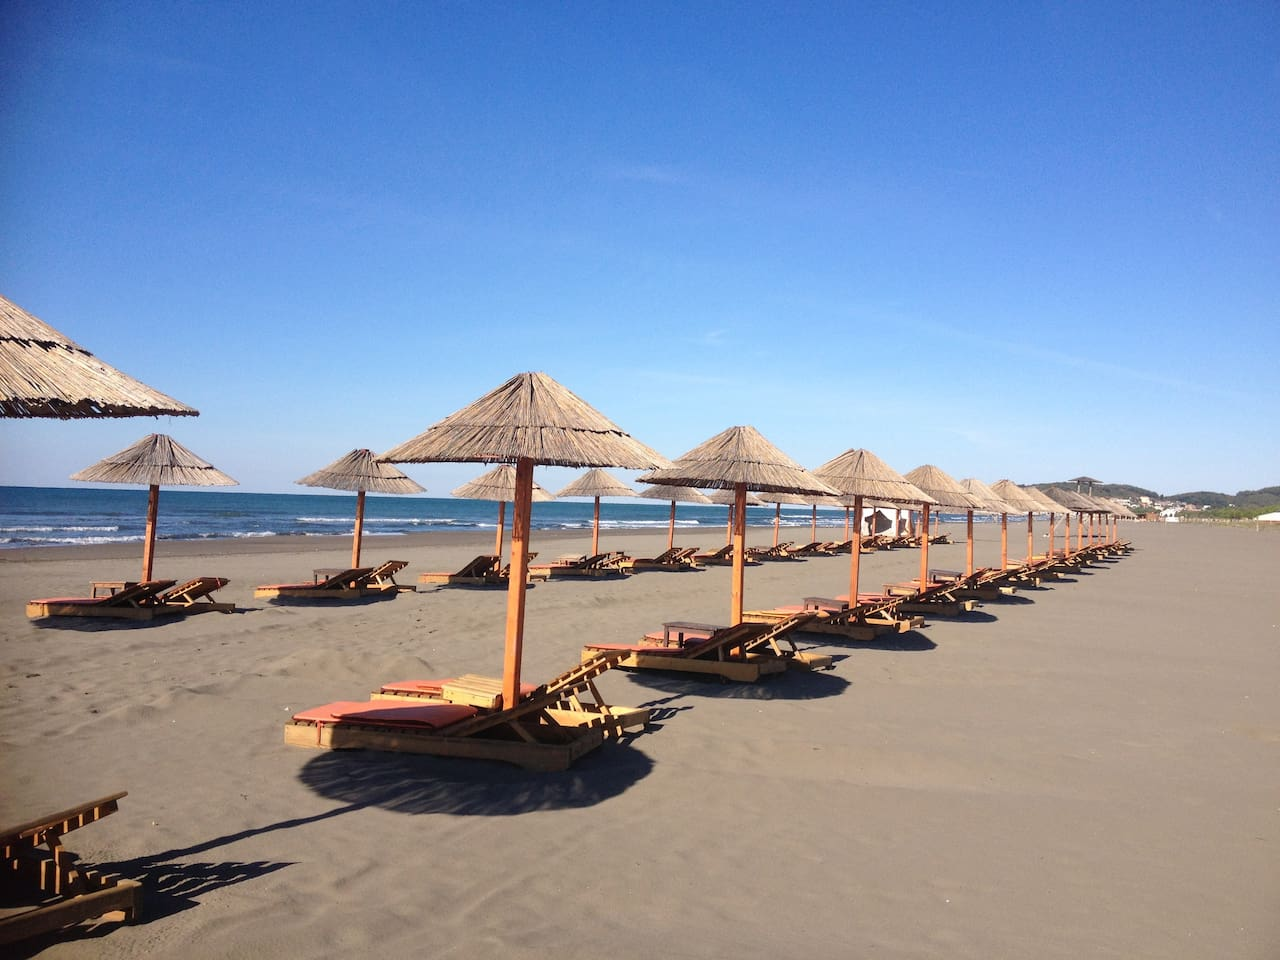 Safari beach, 500 meters from our home.